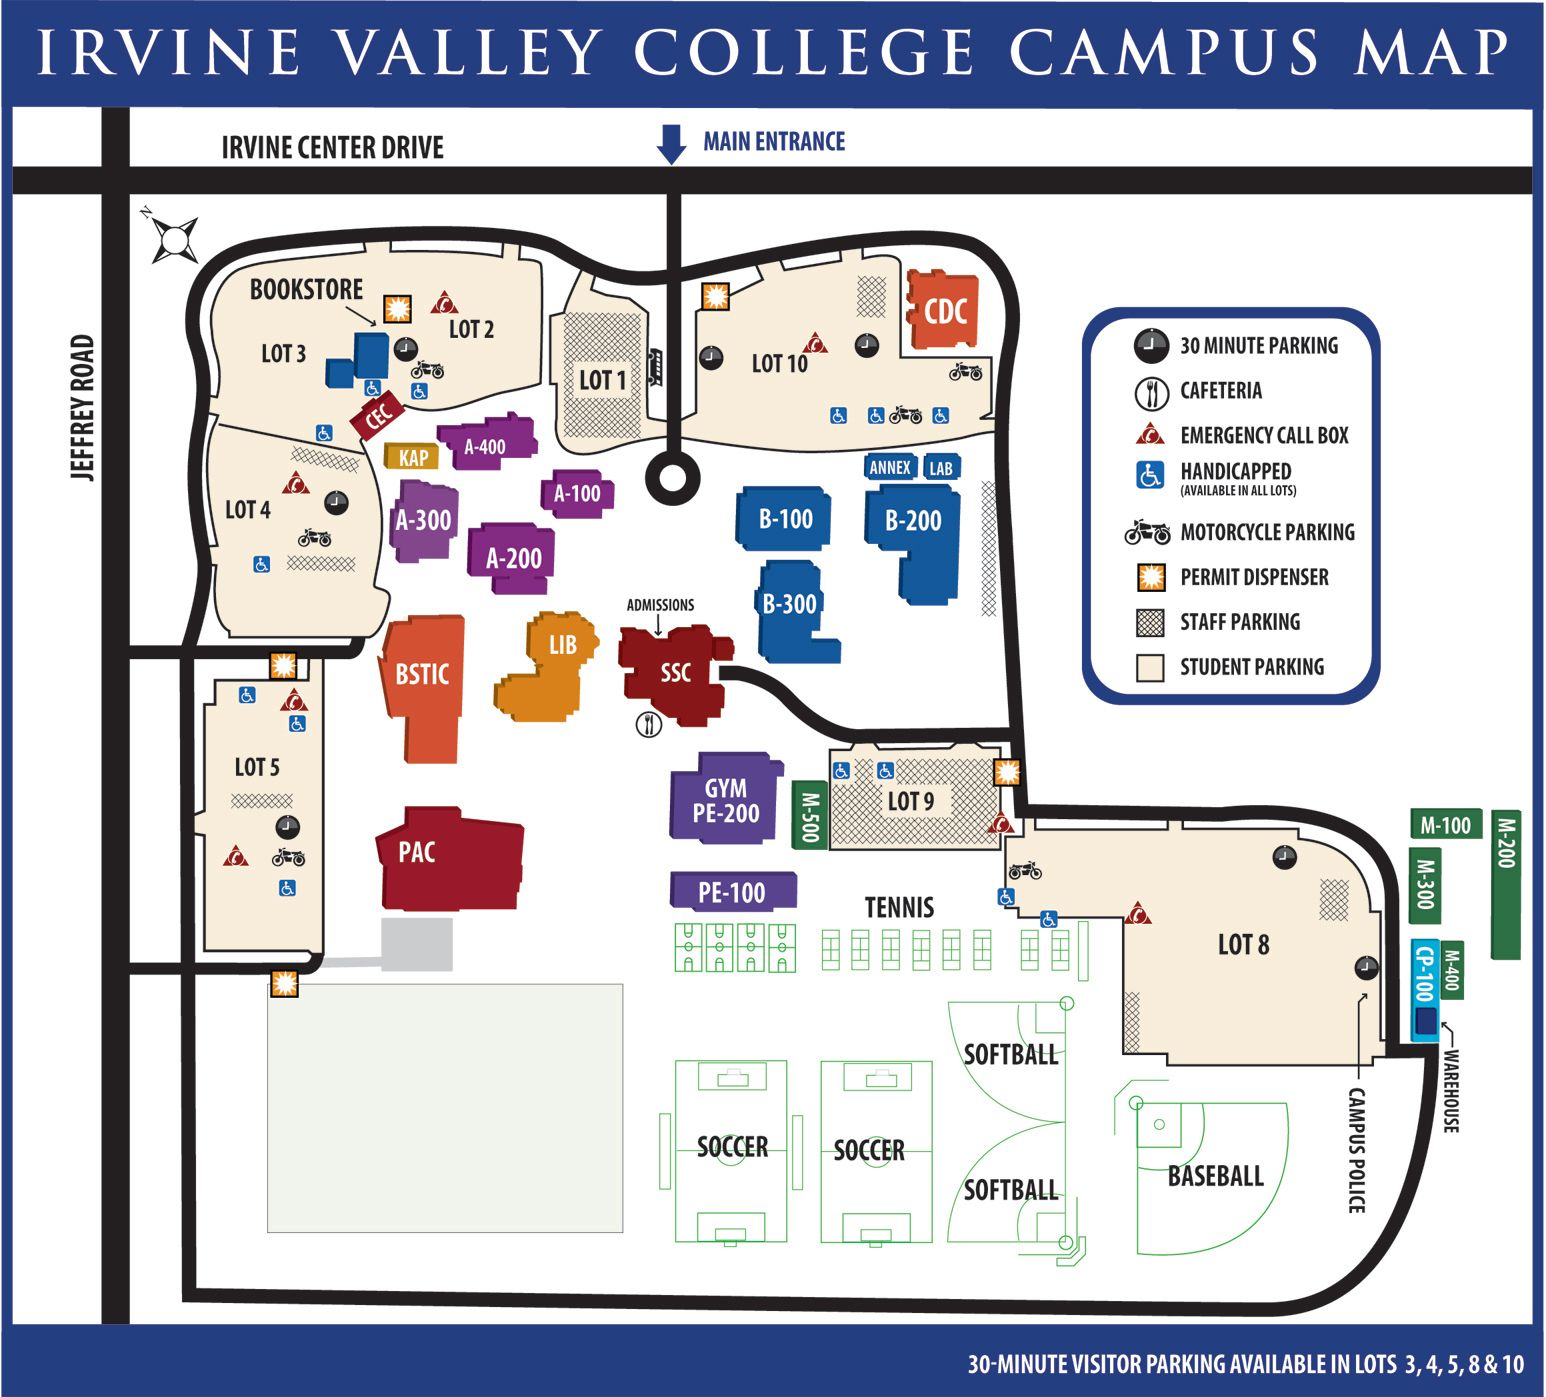 Irvine Valley College Campus Map | Things I want to try